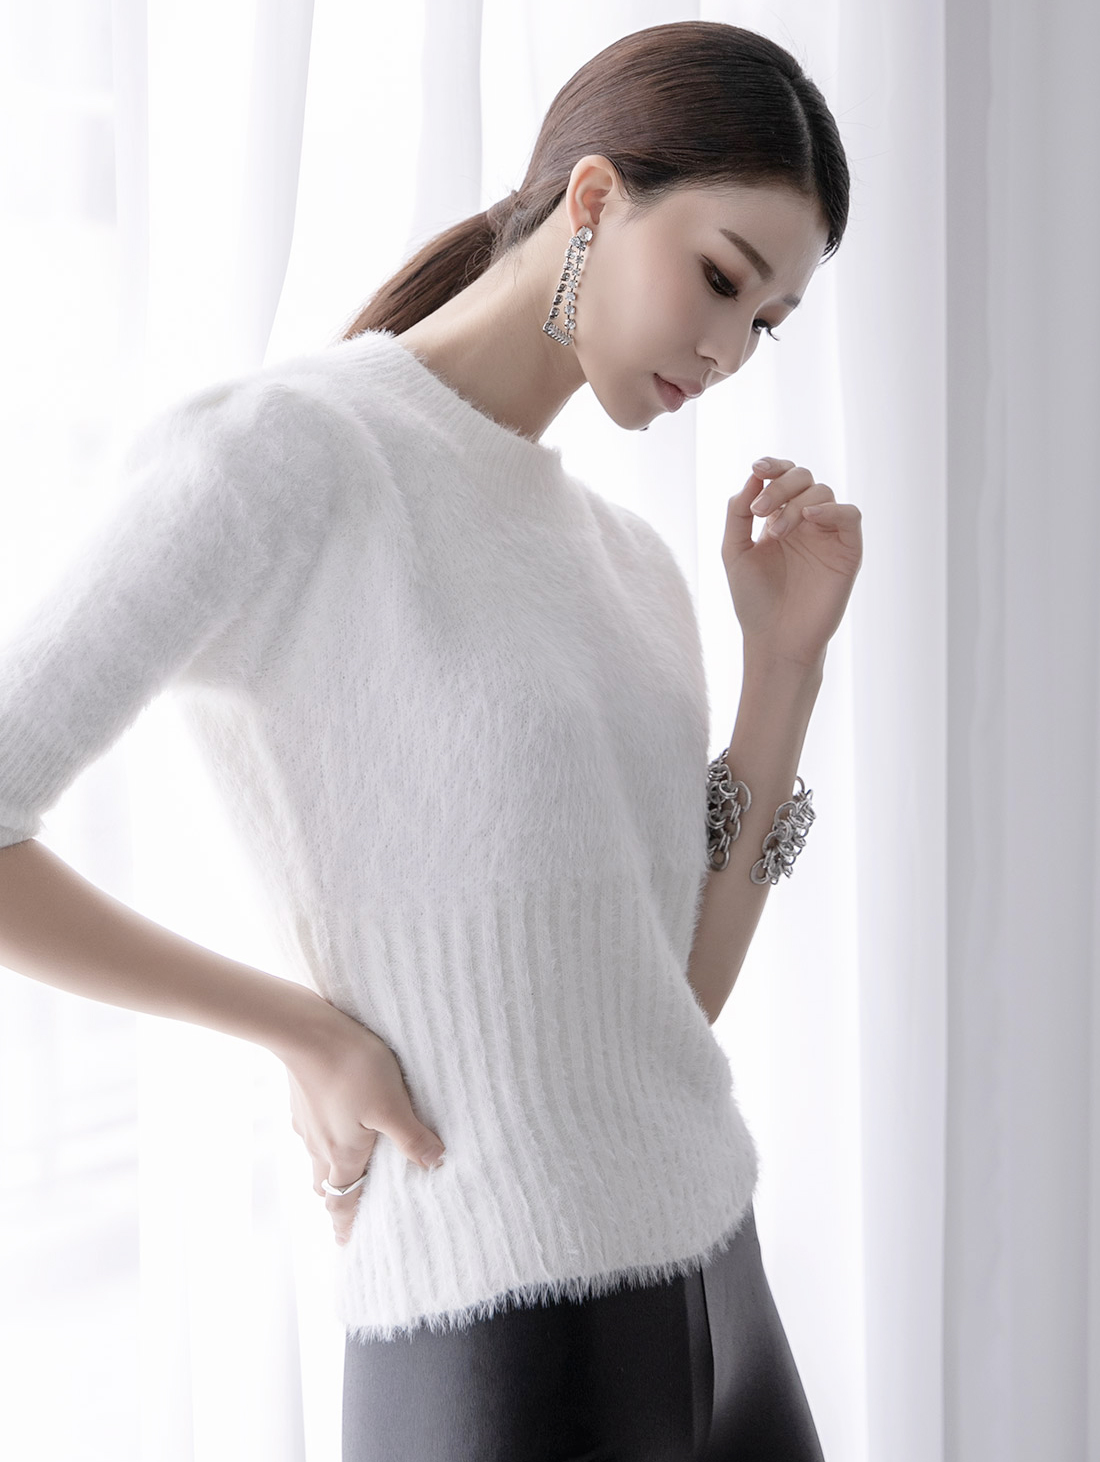 E2135 Simulation Half Sleeve Knit Top (9th REORDER)